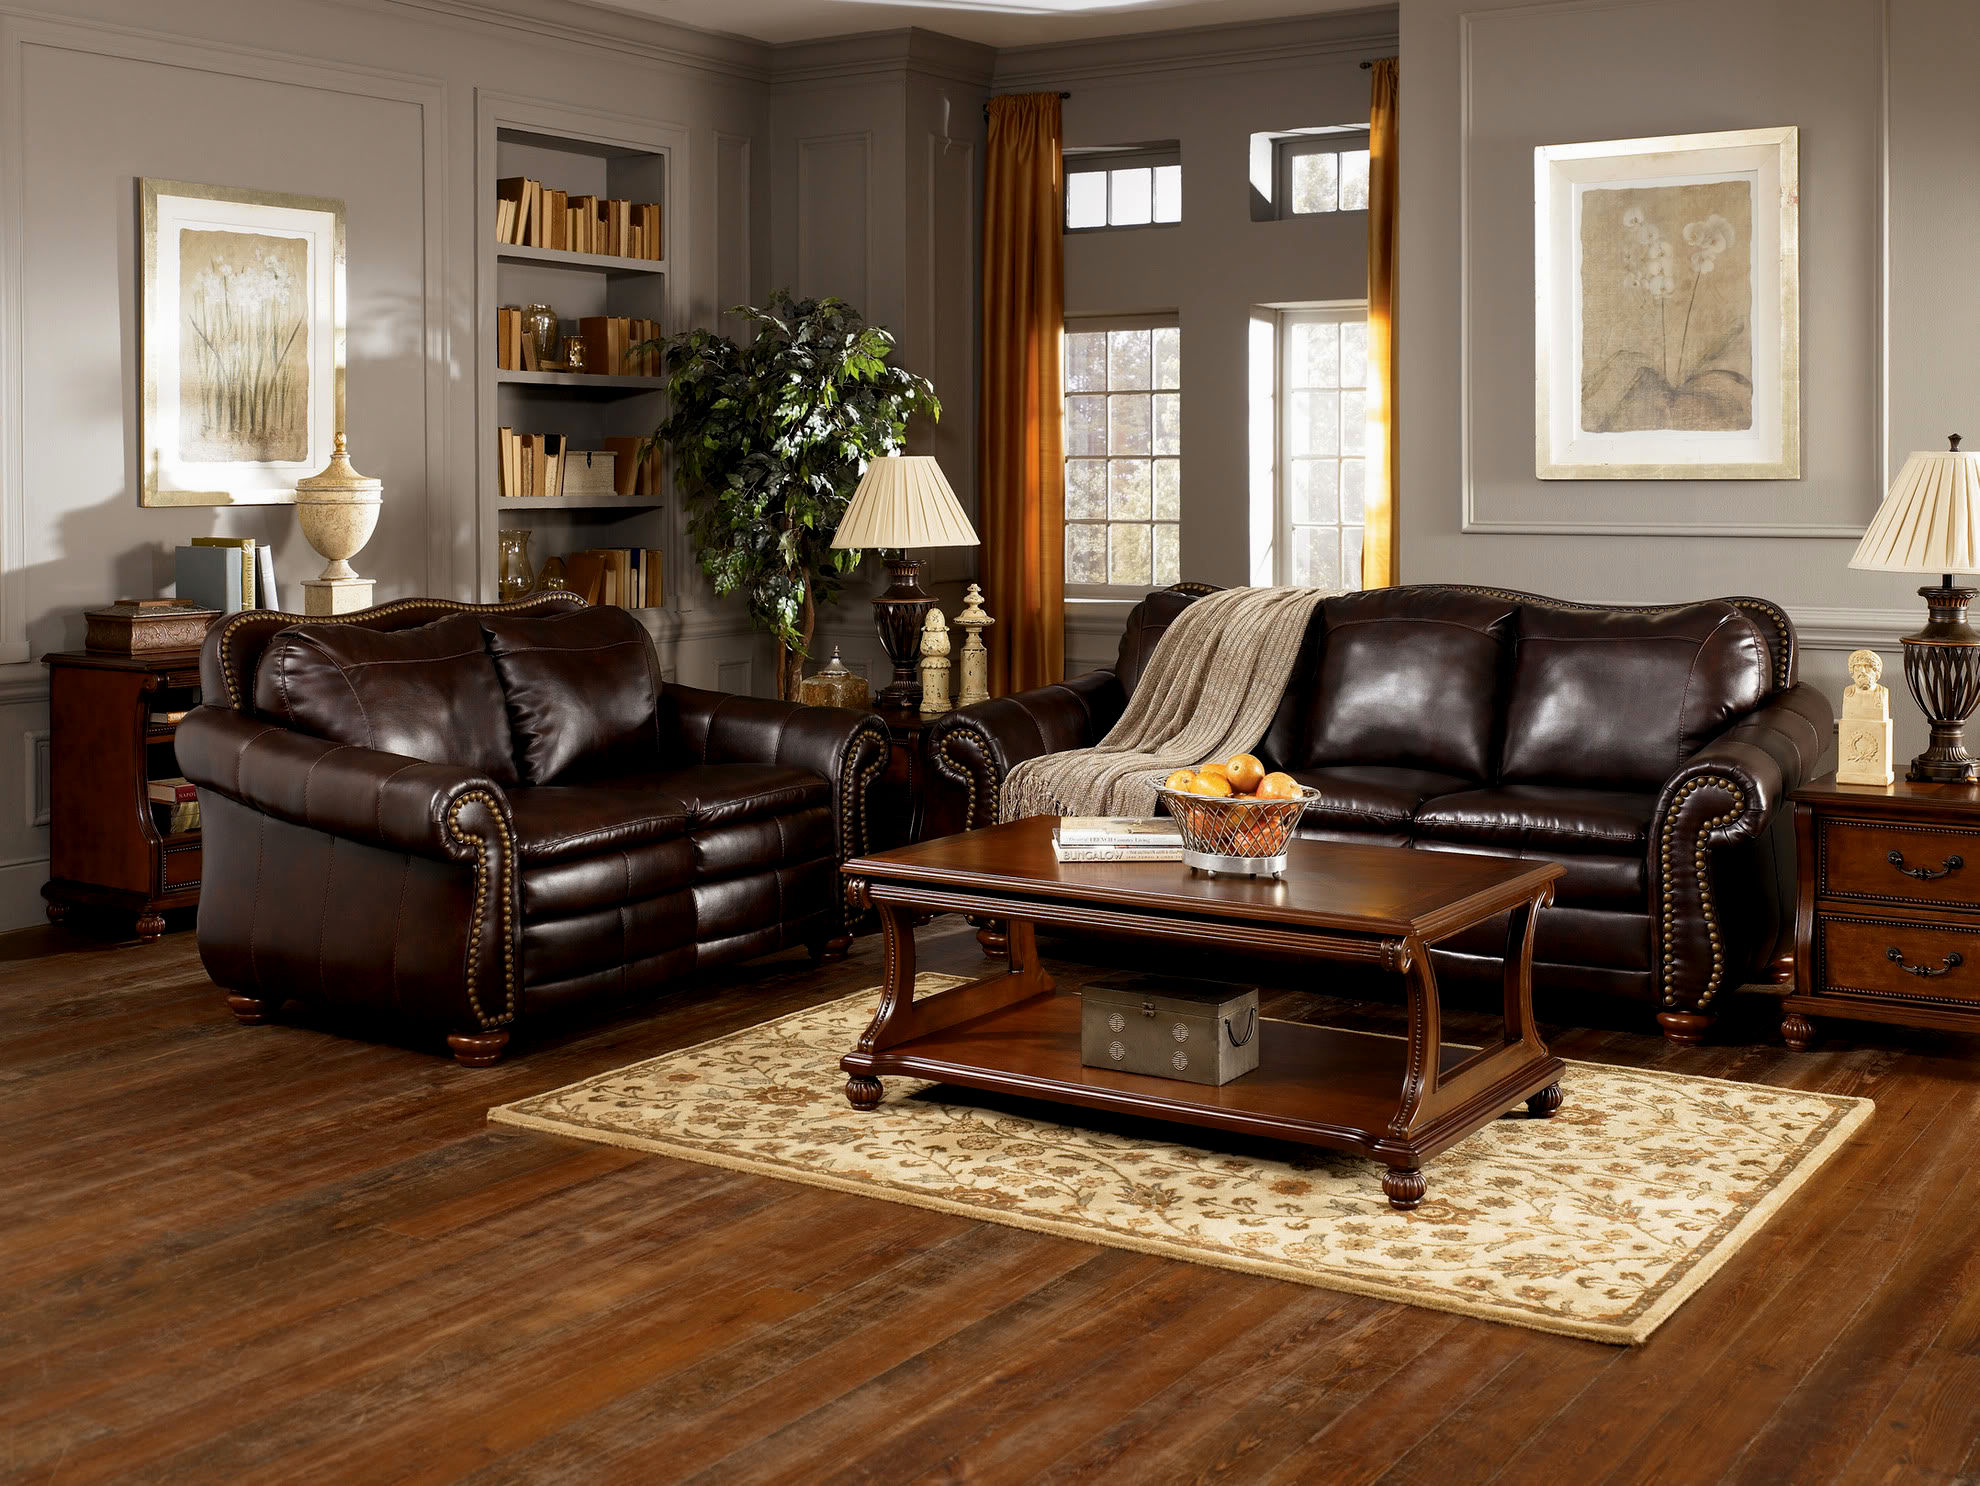 fresh light gray leather sofa collection-Inspirational Light Gray Leather sofa Picture